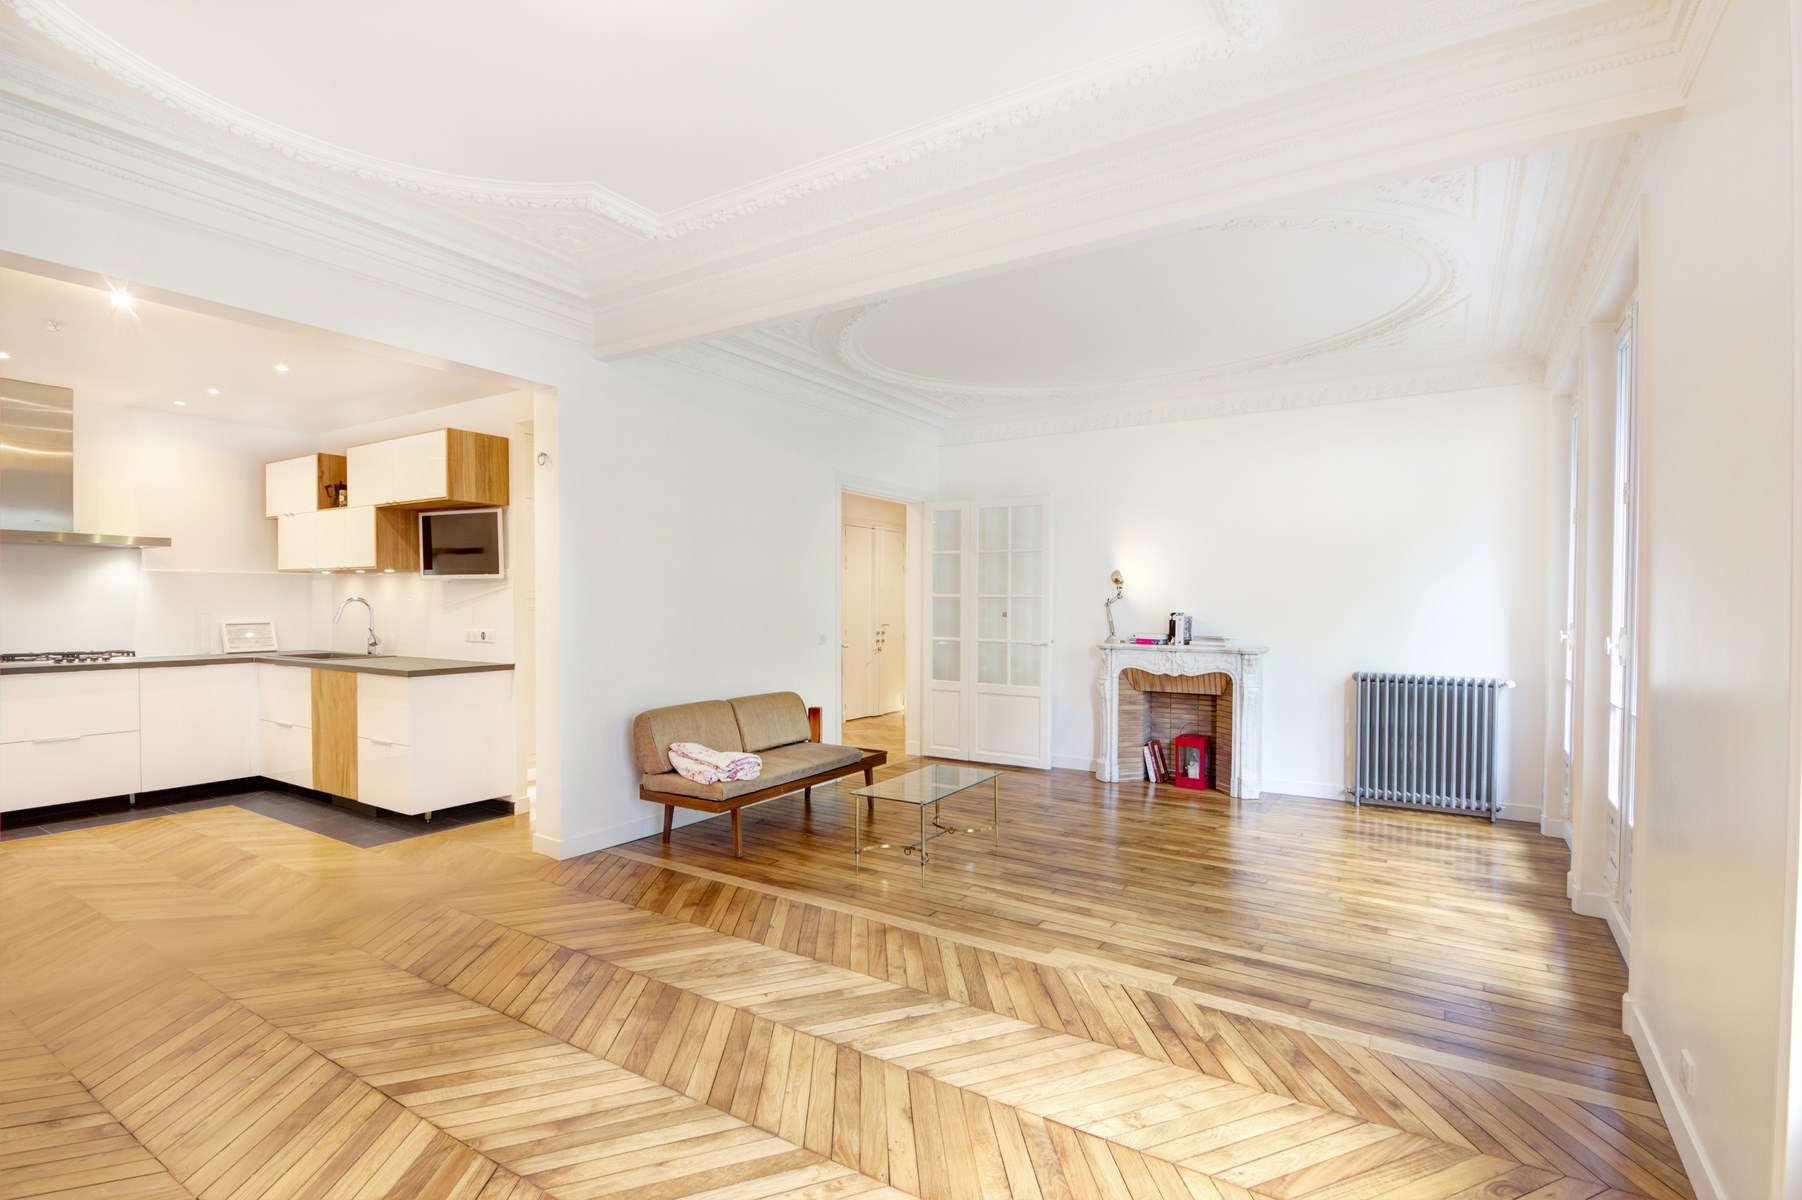 R novation d 39 un appartement haussmannien paris mairie 19eme for Salon haussmanien